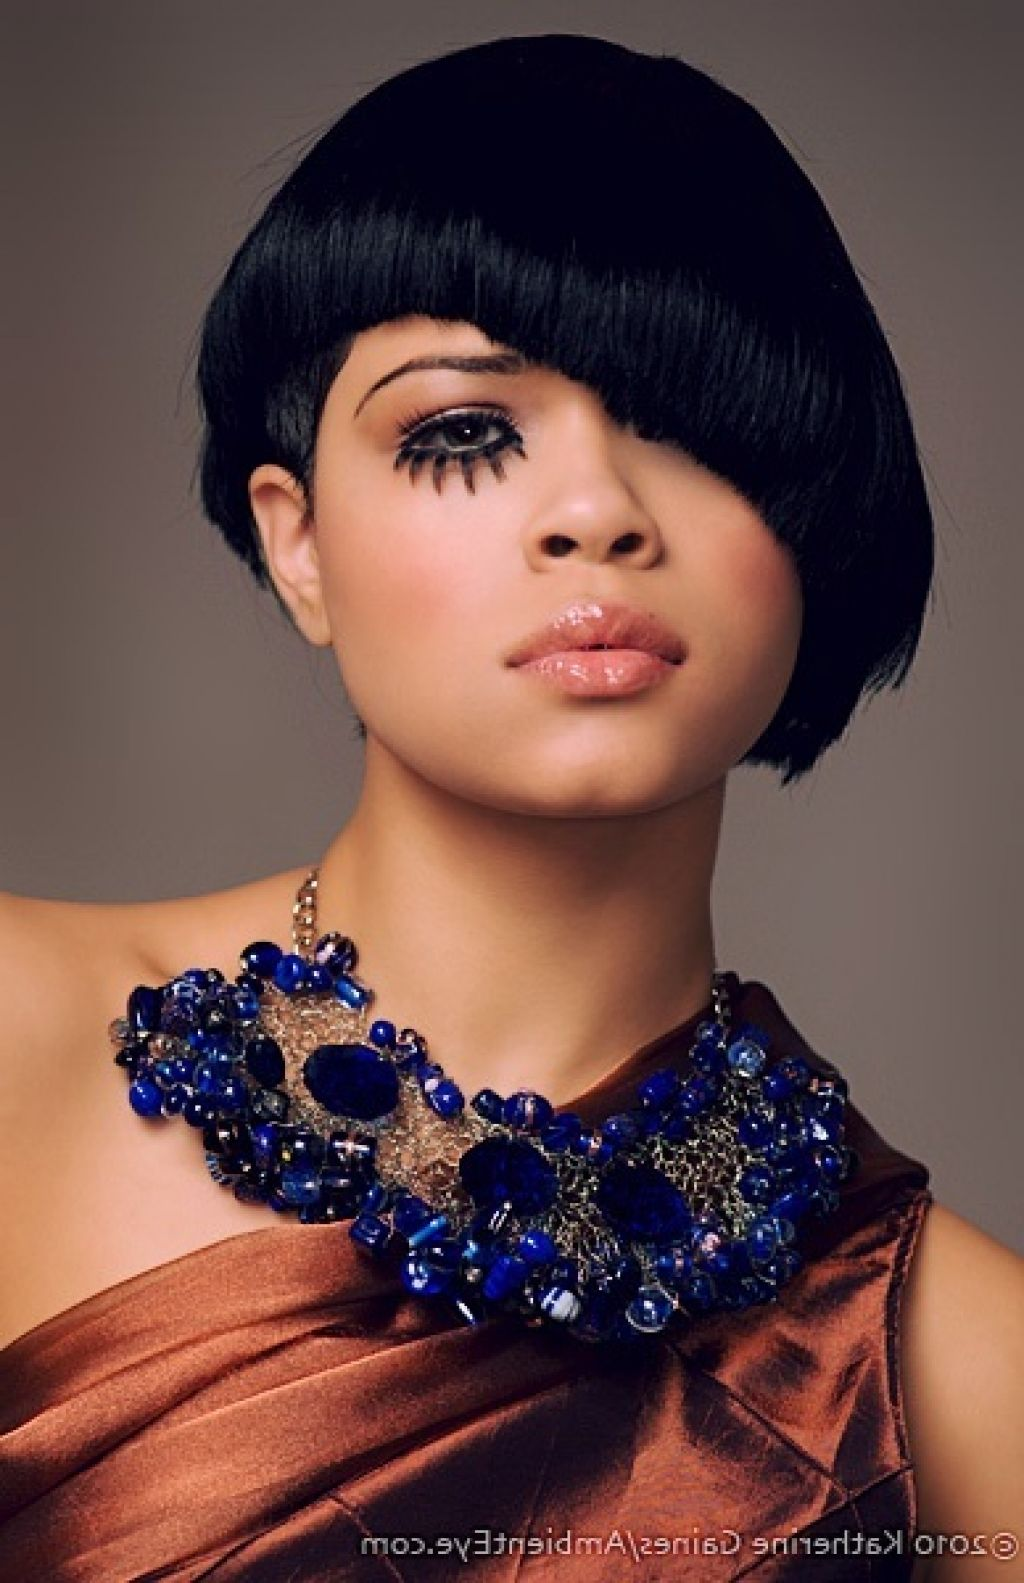 Tremendous Short Haircut for Thick hair African American Half Face Covered